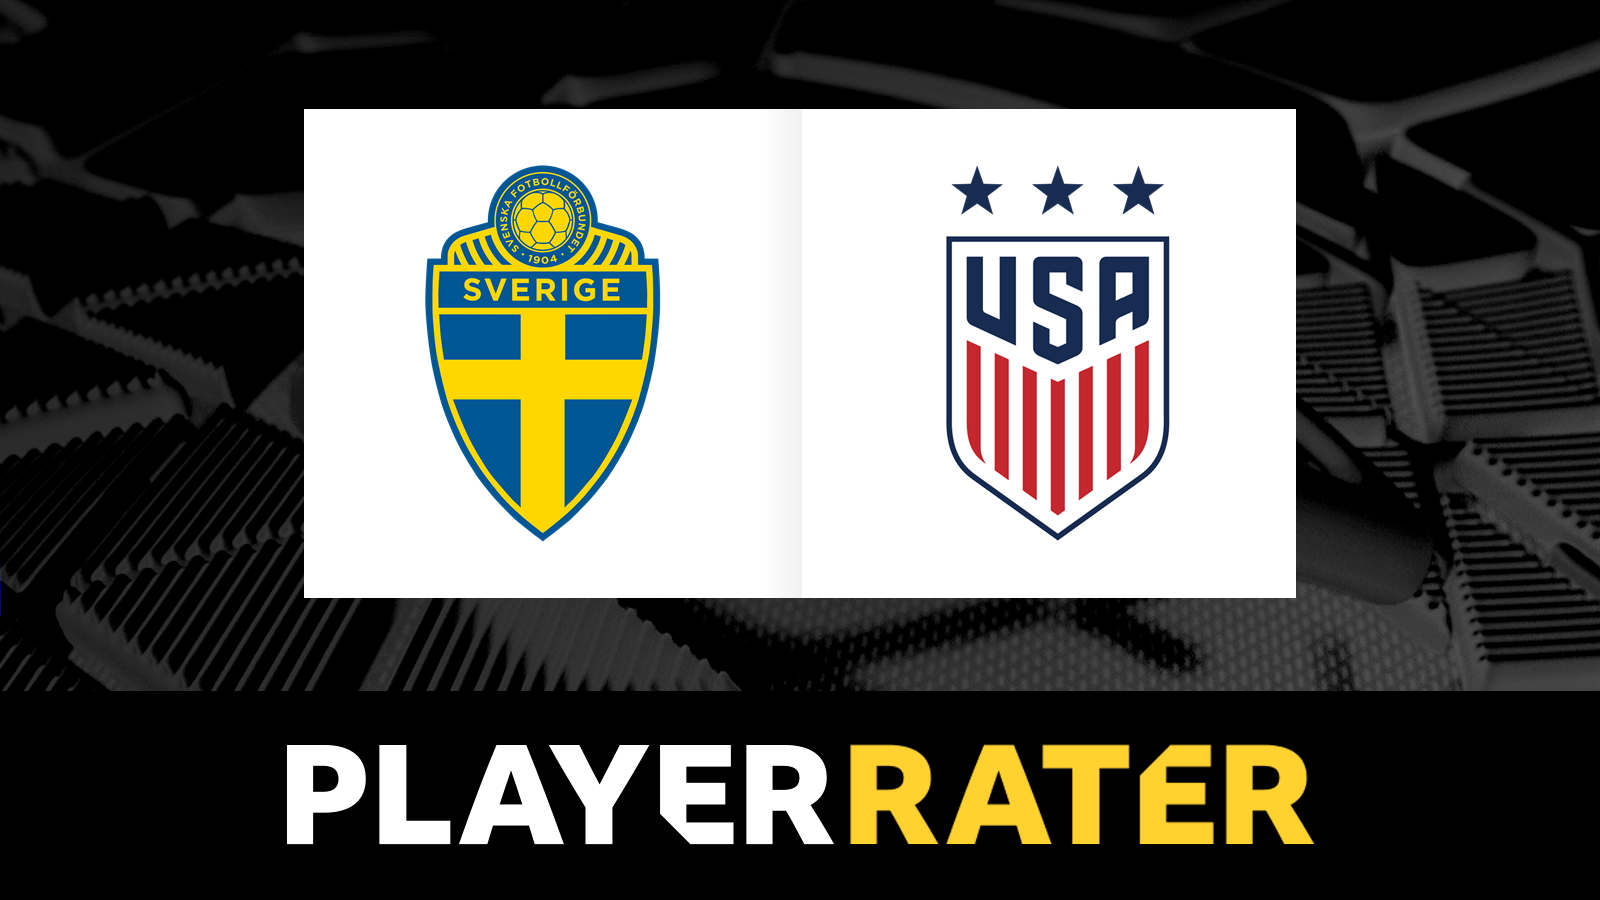 Women's World Cup: Rate the players - Sweden v USA